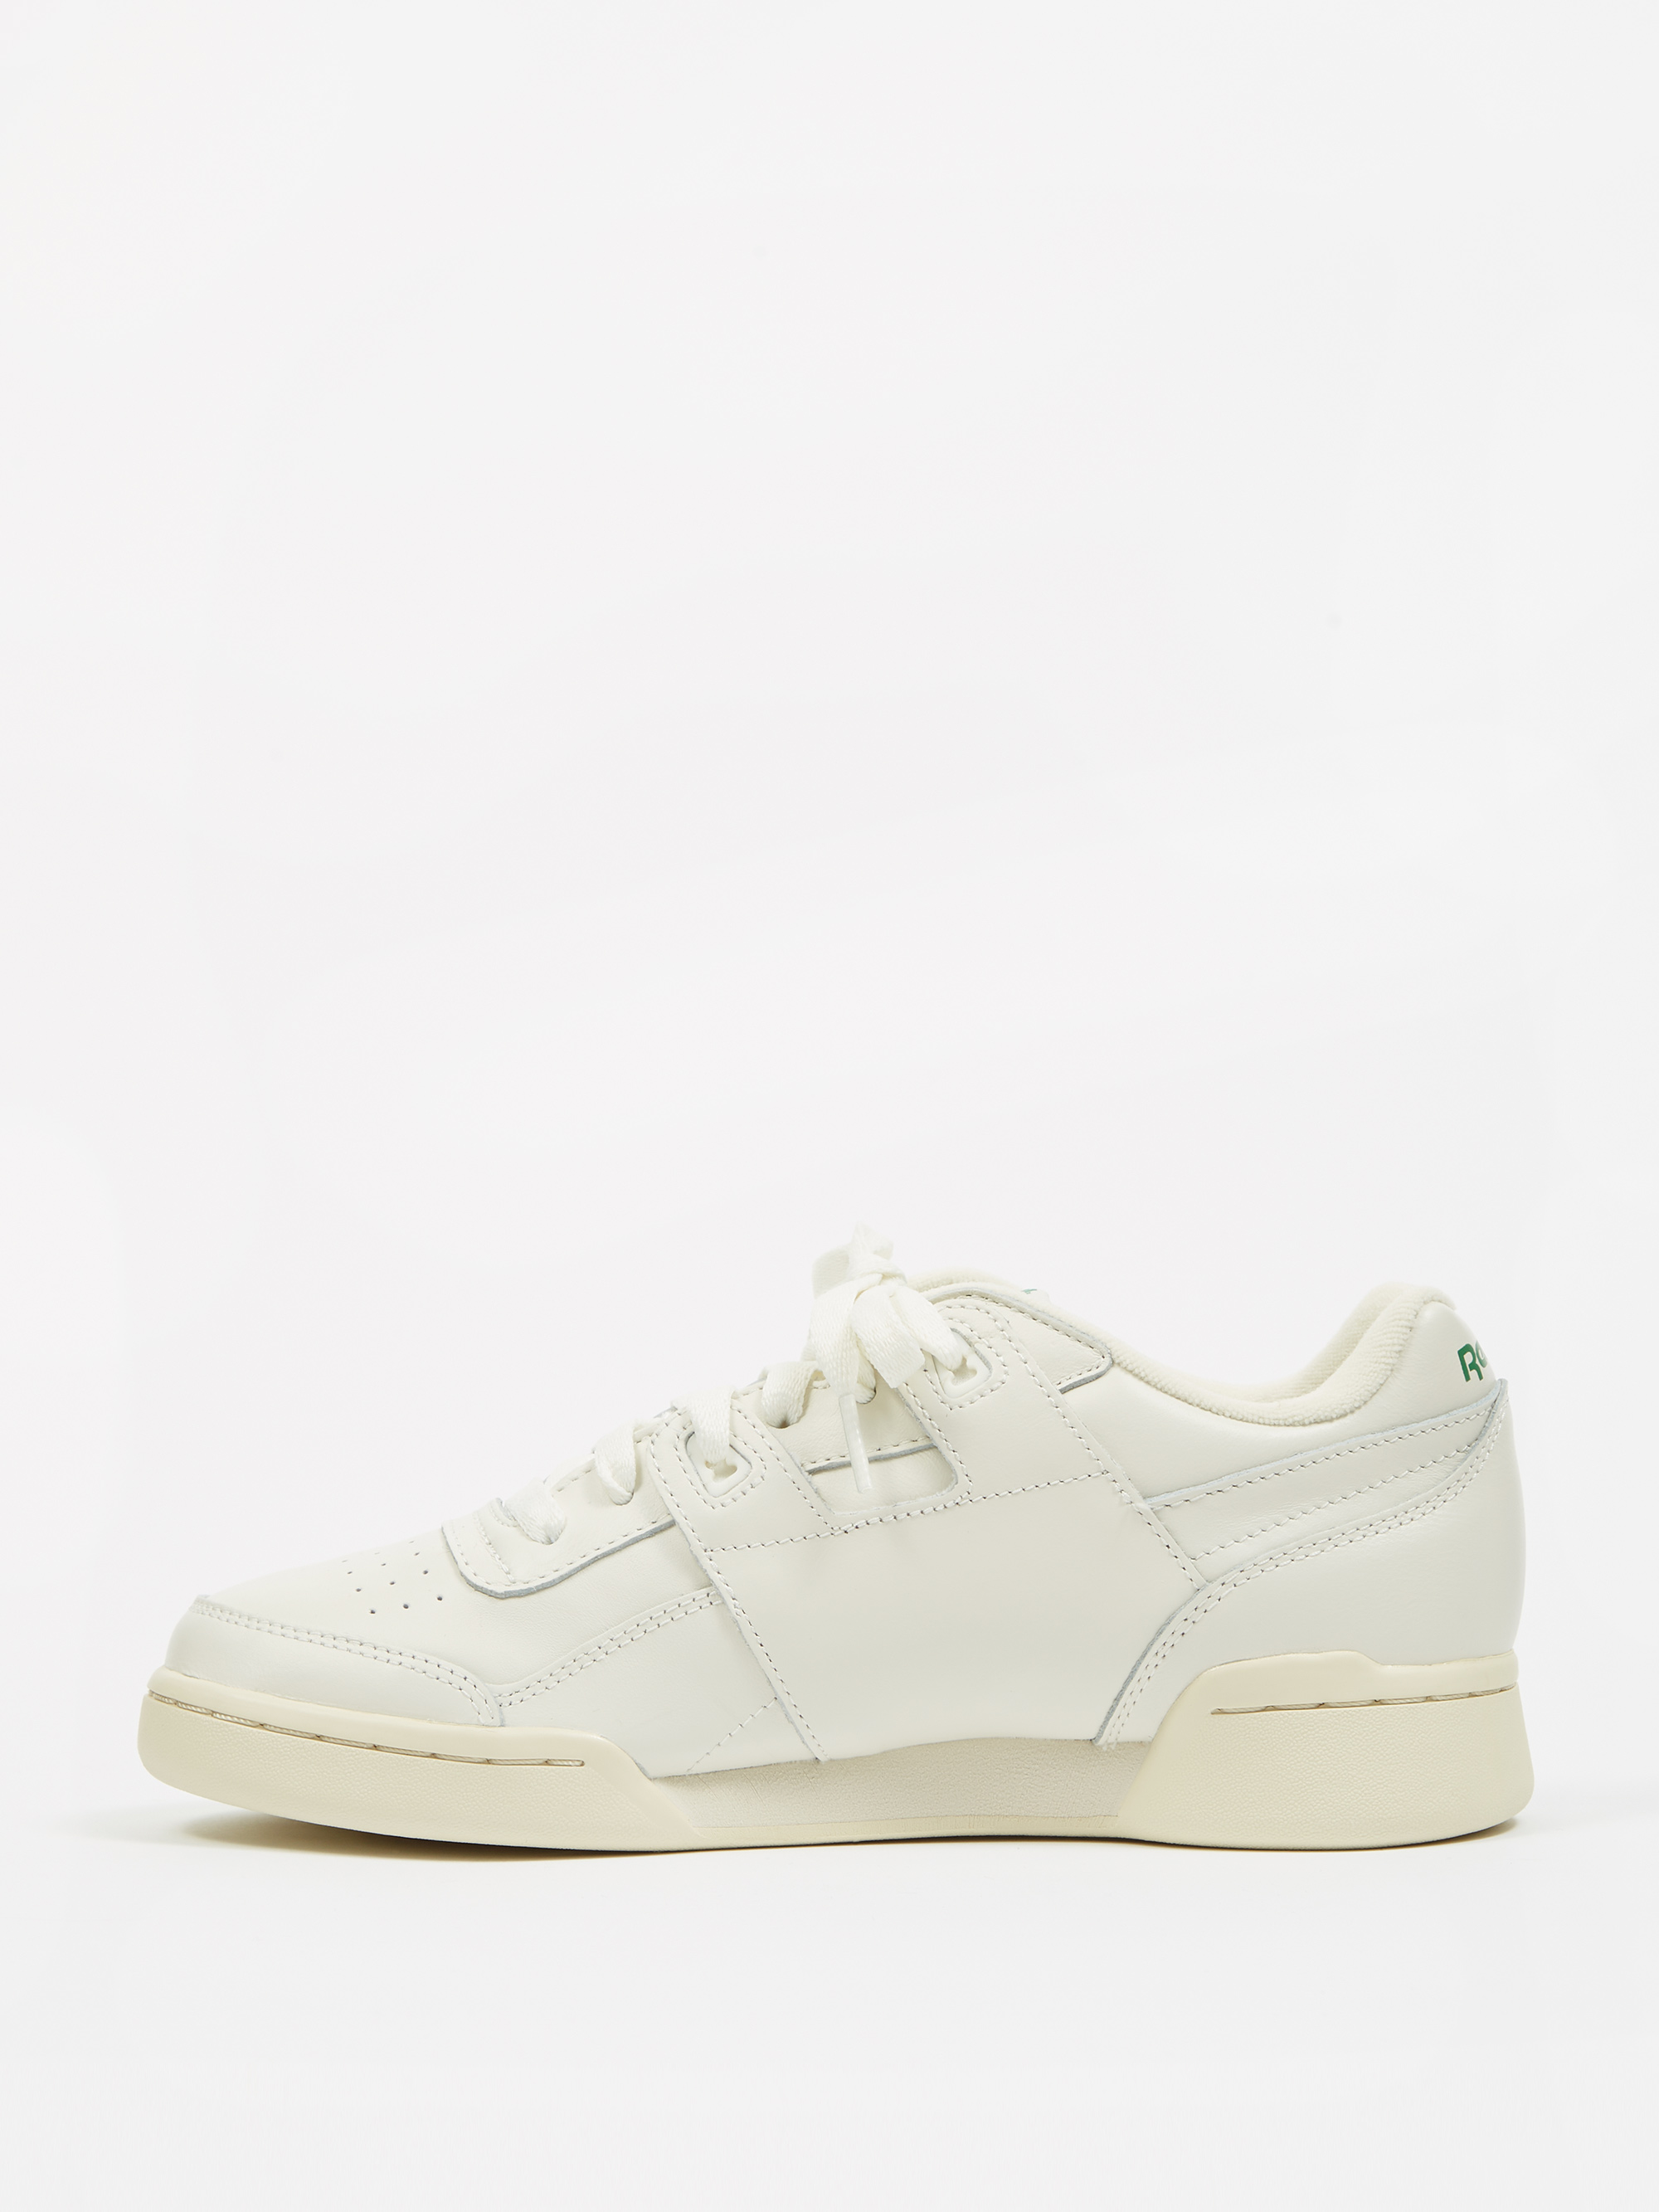 79a79aeeaf1 Reebok Workout Lo Plus - Vintage Chalk/Paper White/Glen Green